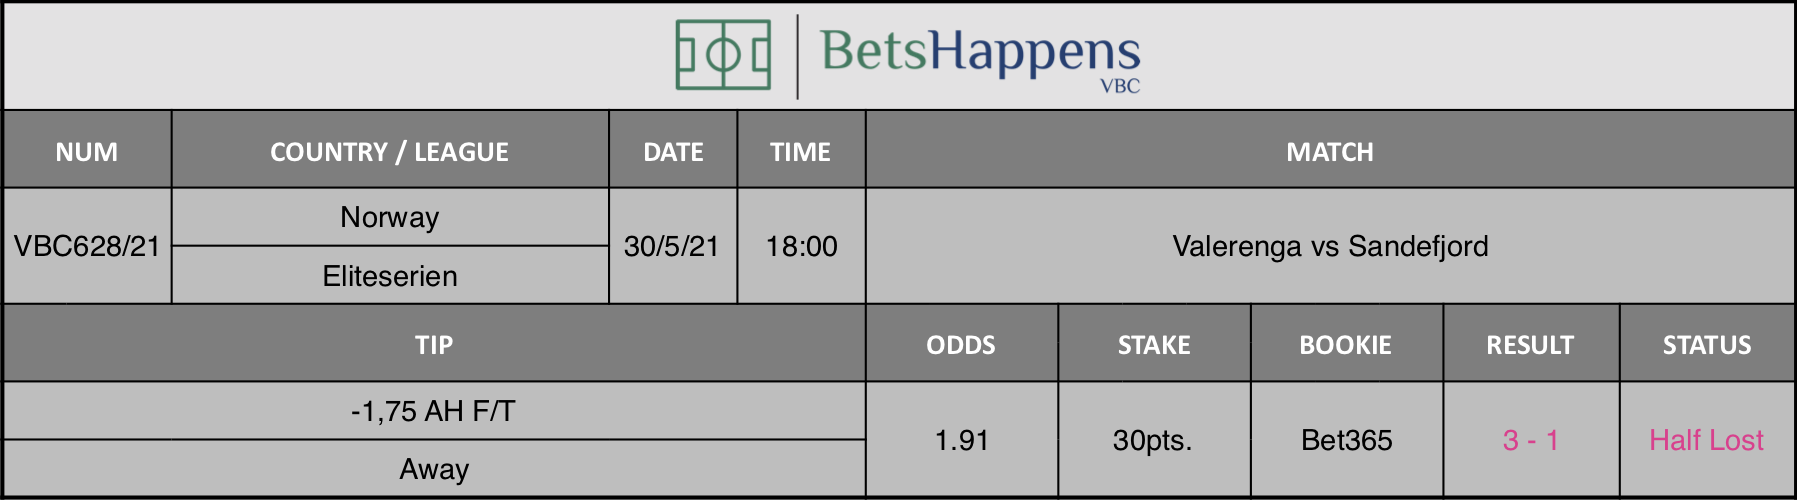 Results of our tip for the Valerenga vs Sandefjord where -1,75 AH F/T Away is recommended.